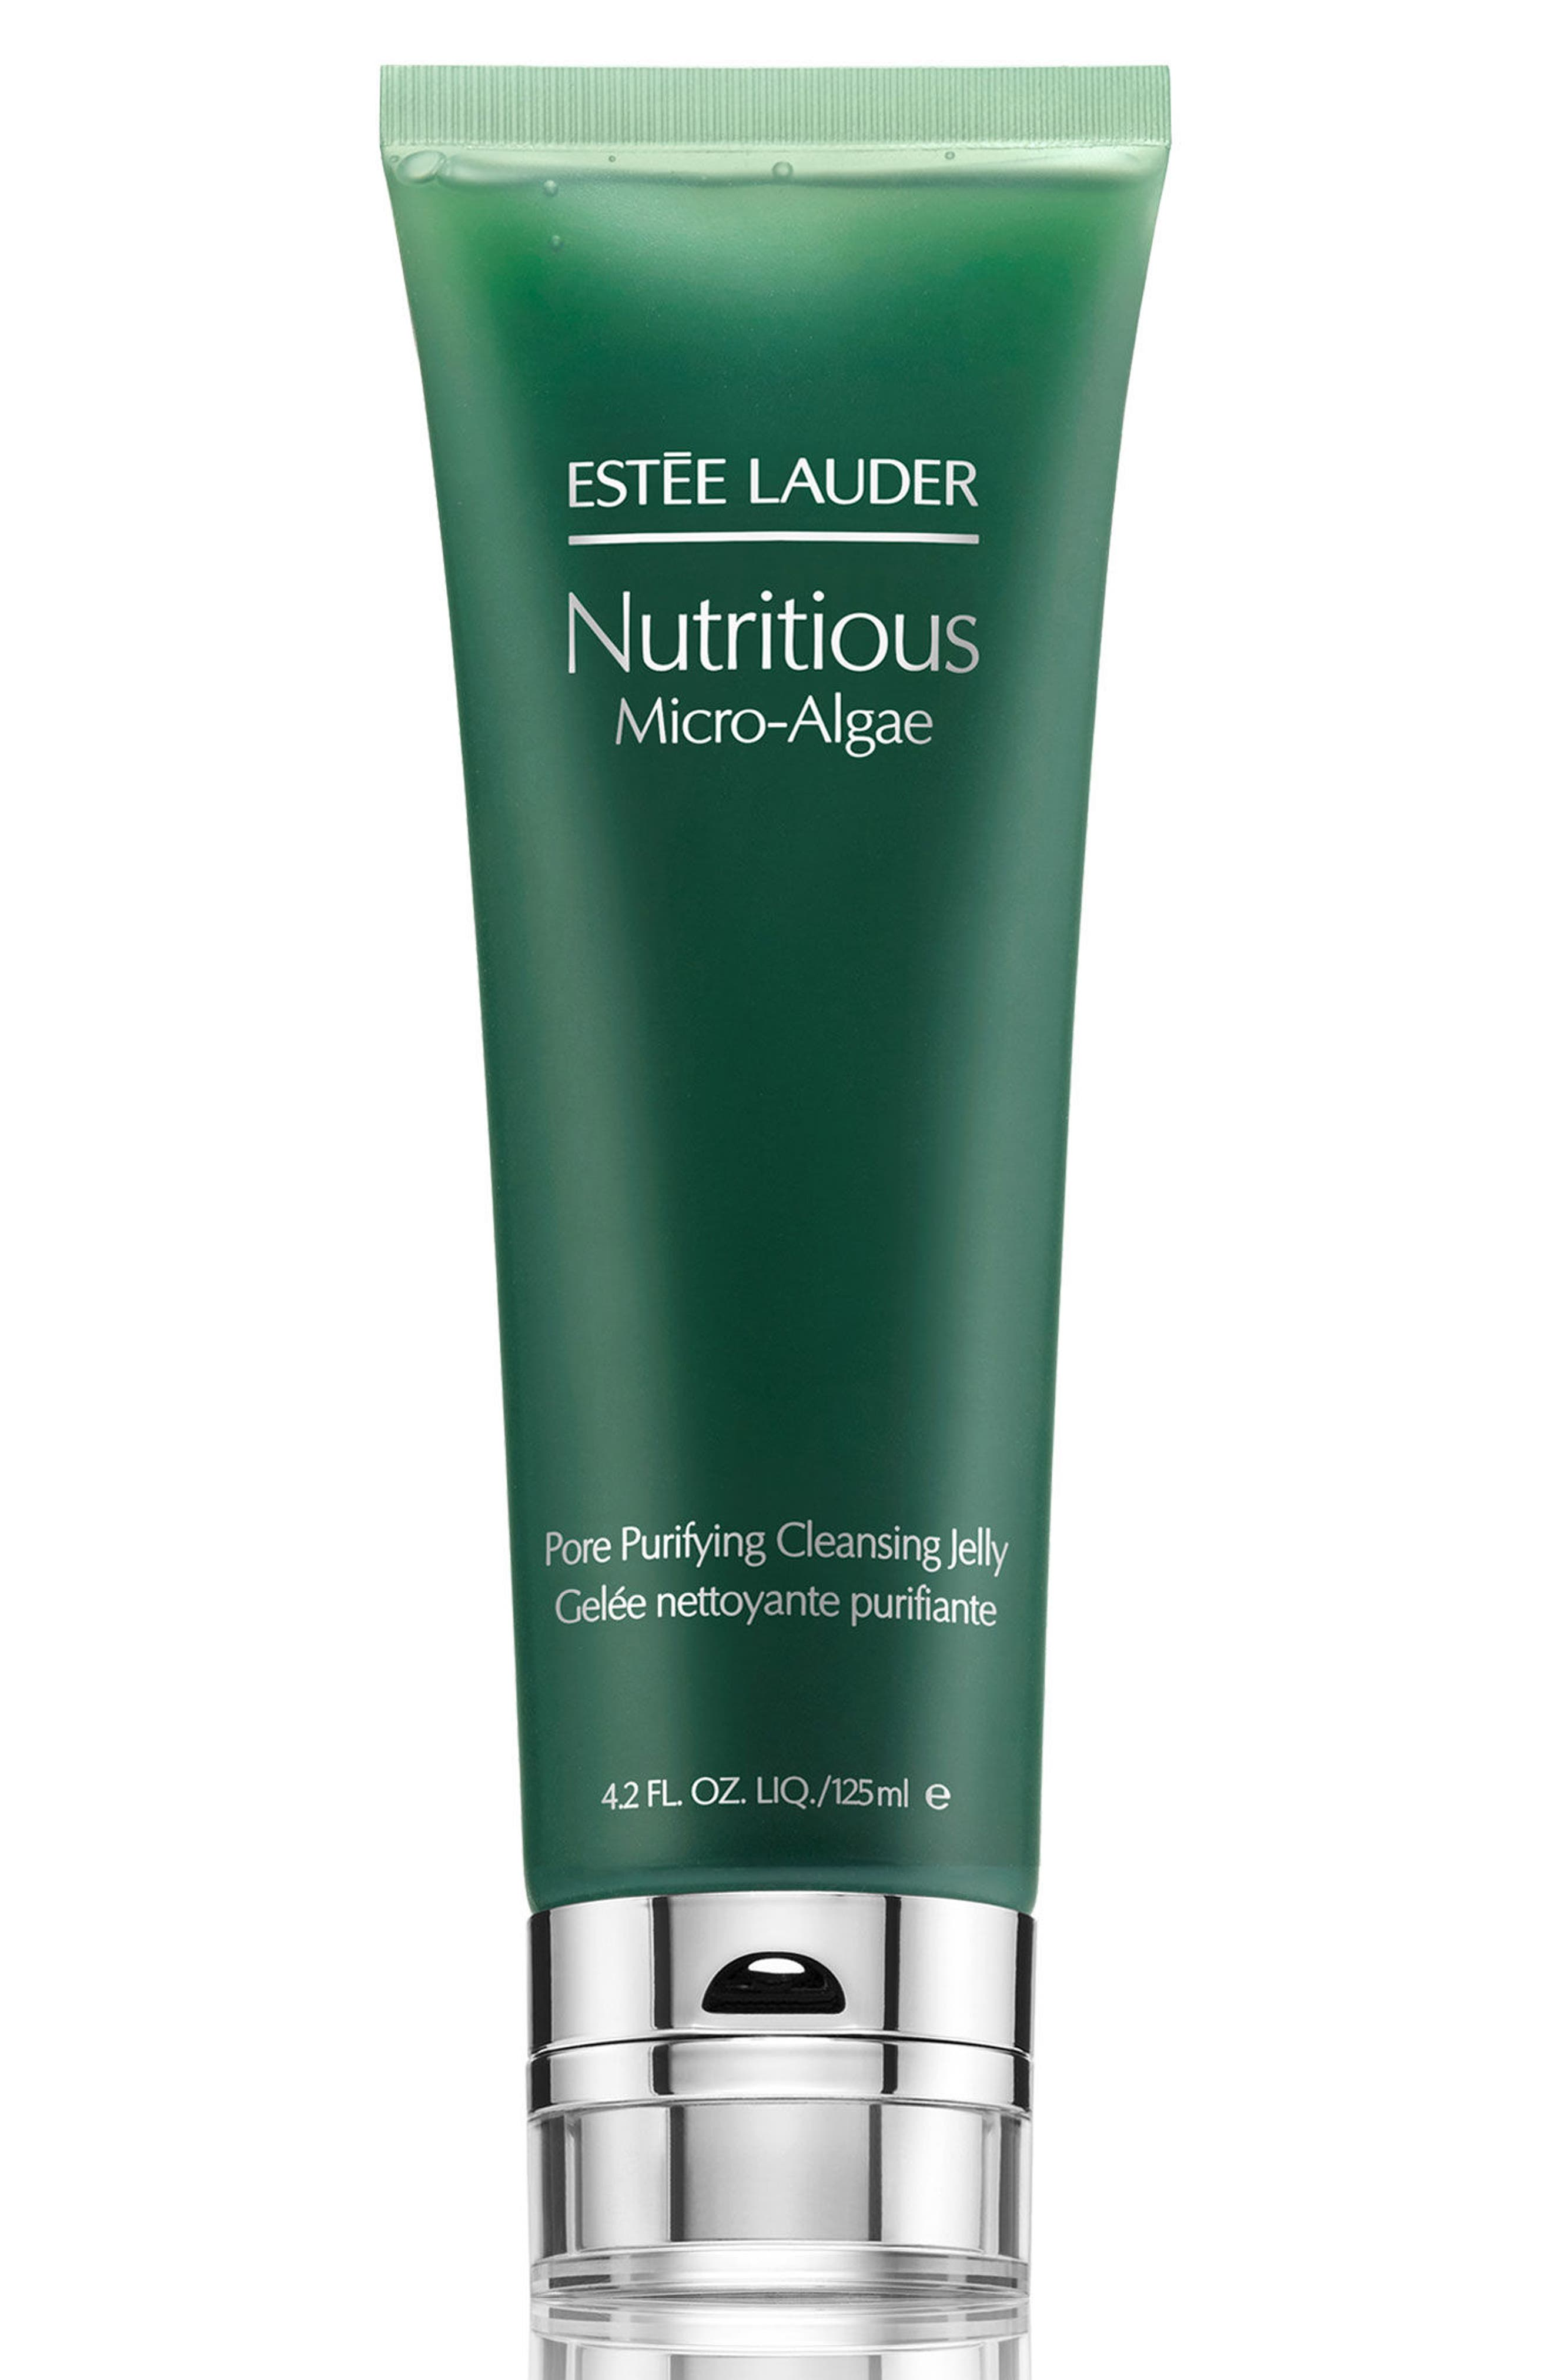 Nutritious Micro-Algae Pore Purifying Cleansing Gel,                             Main thumbnail 1, color,                             NO COLOR